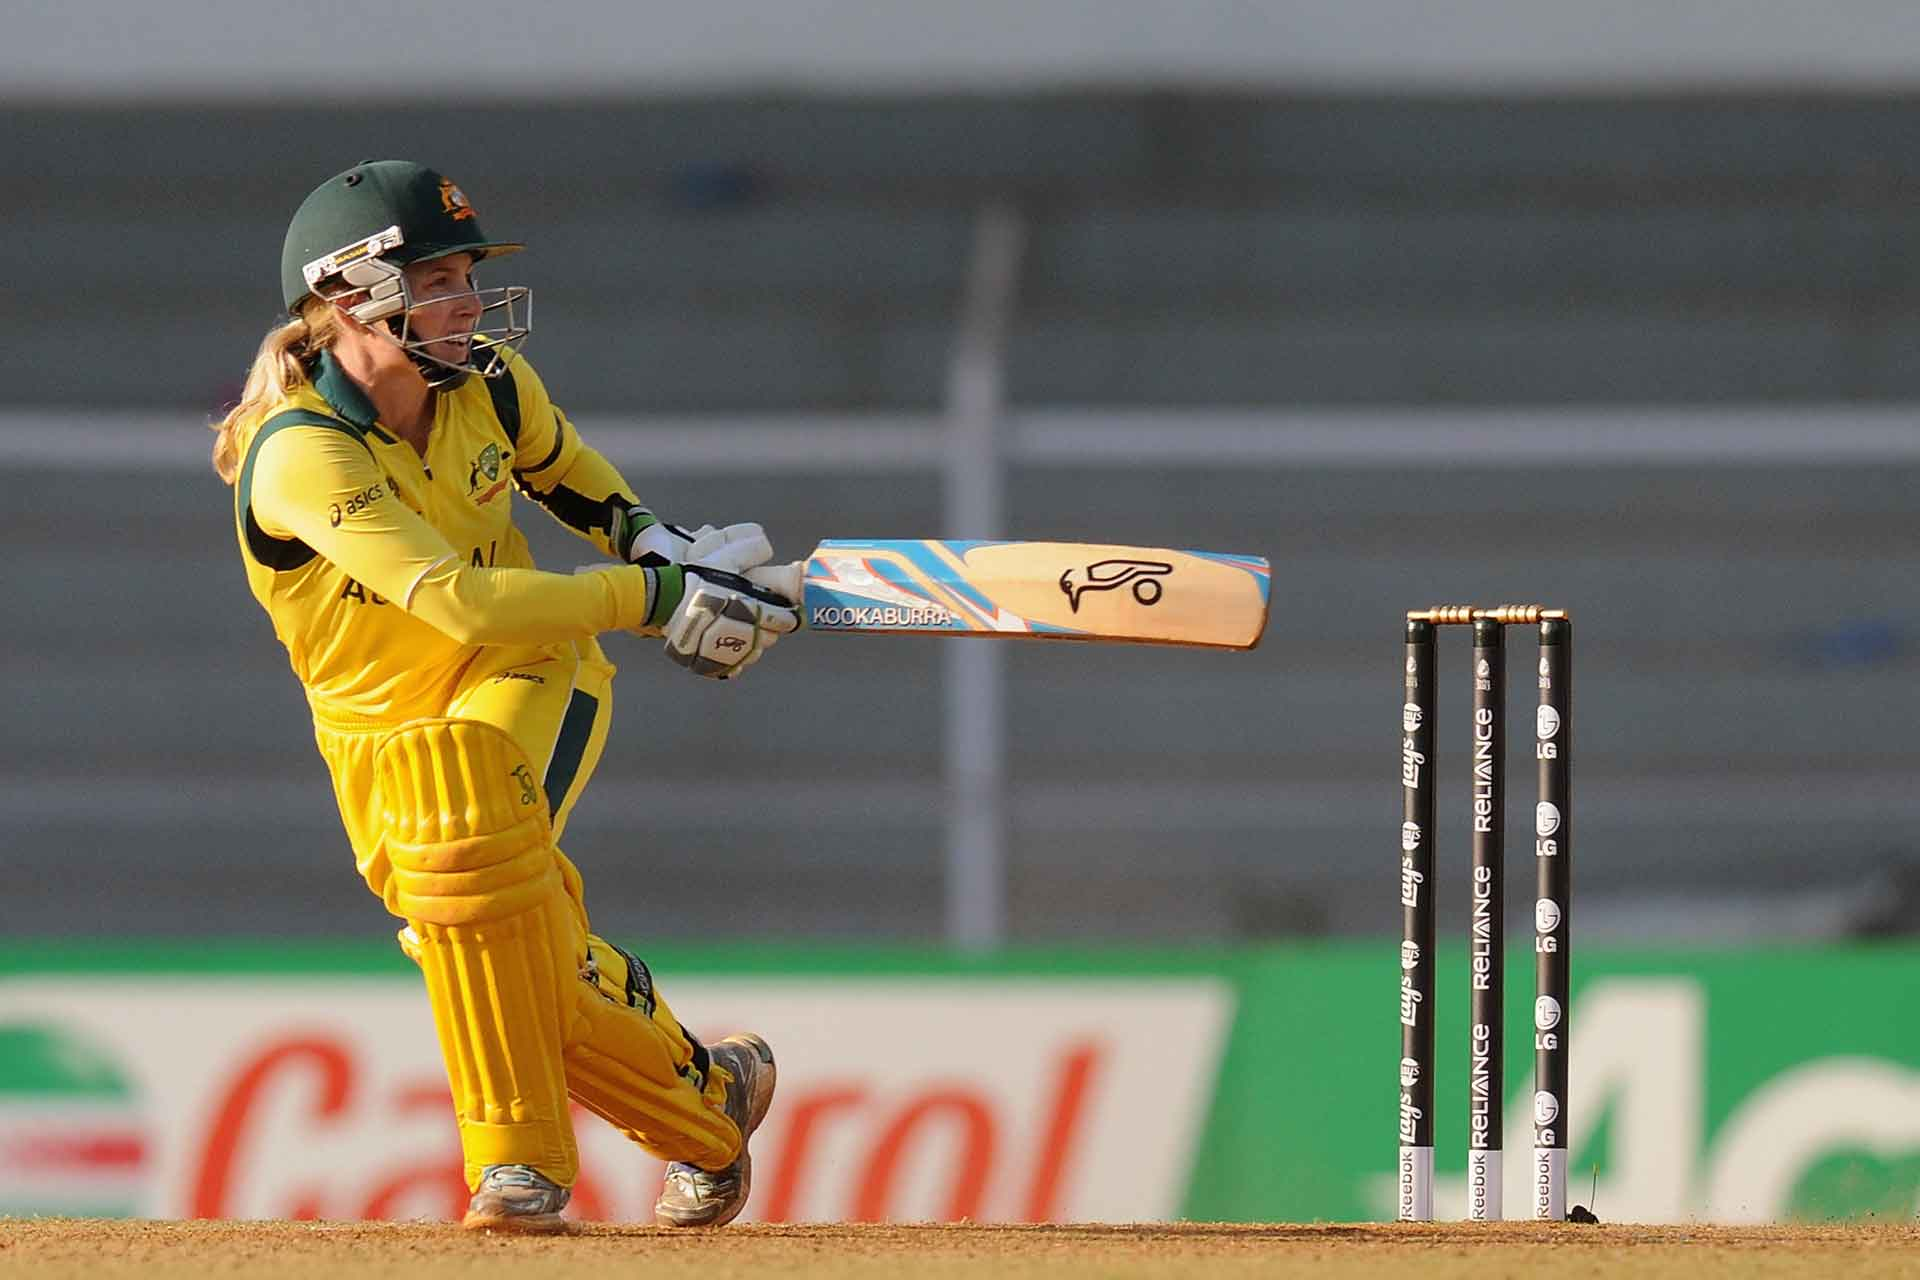 Former Australia Captain to join 2016-17 Meteors squad